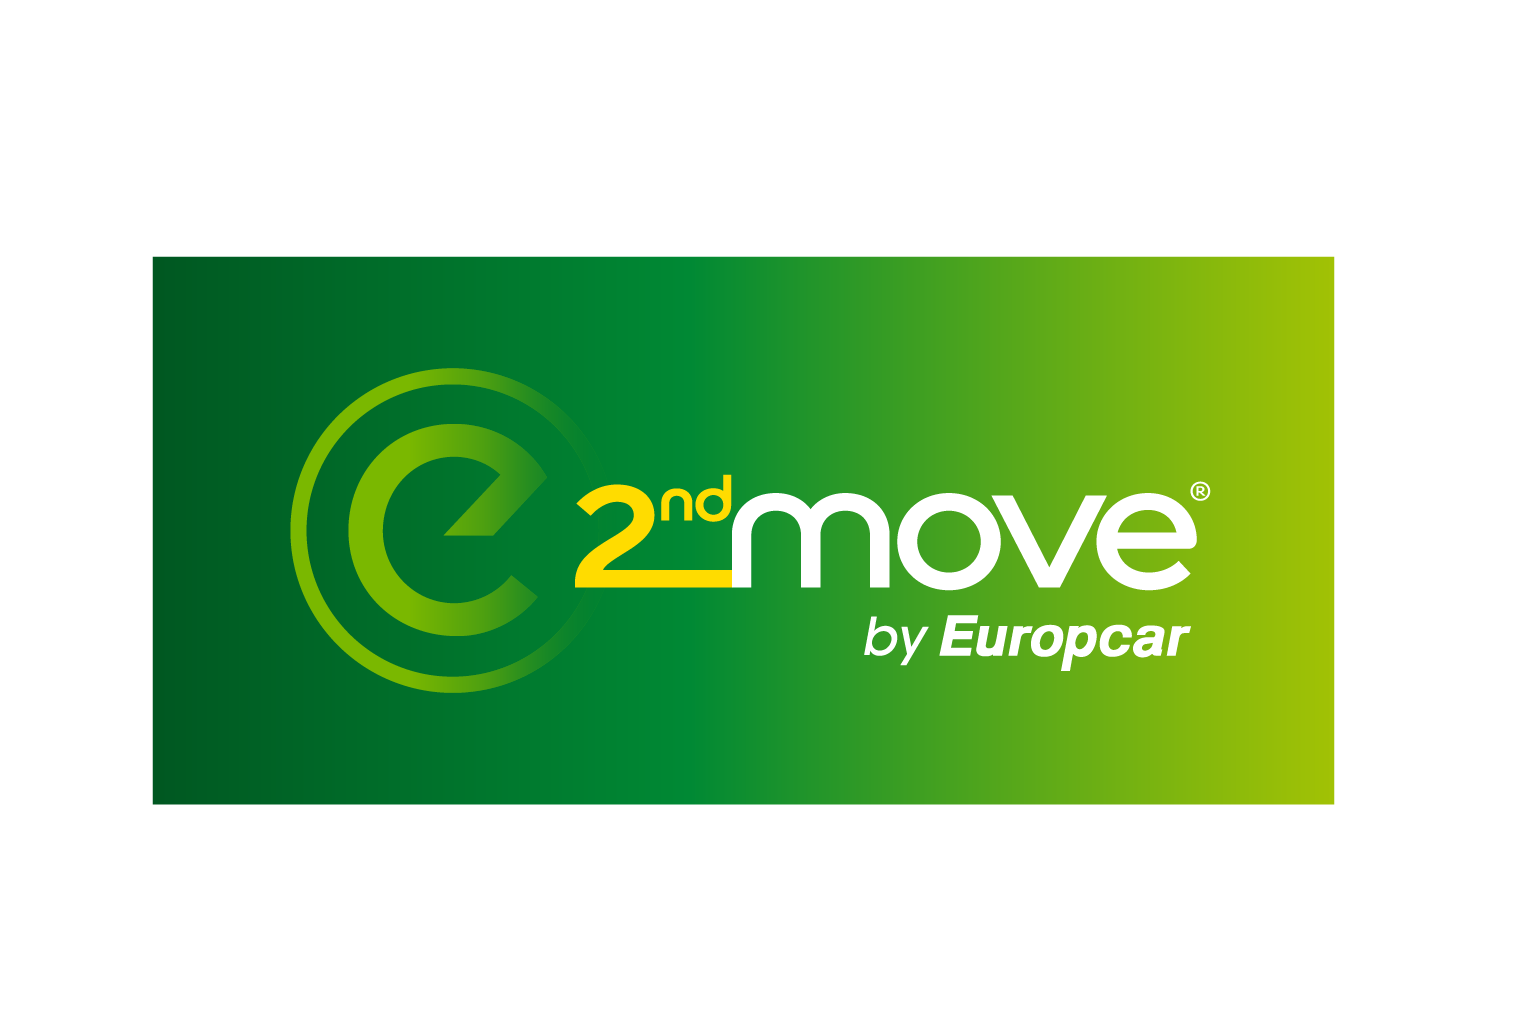 acheter une voiture d 39 occasion 2nd move europcar. Black Bedroom Furniture Sets. Home Design Ideas